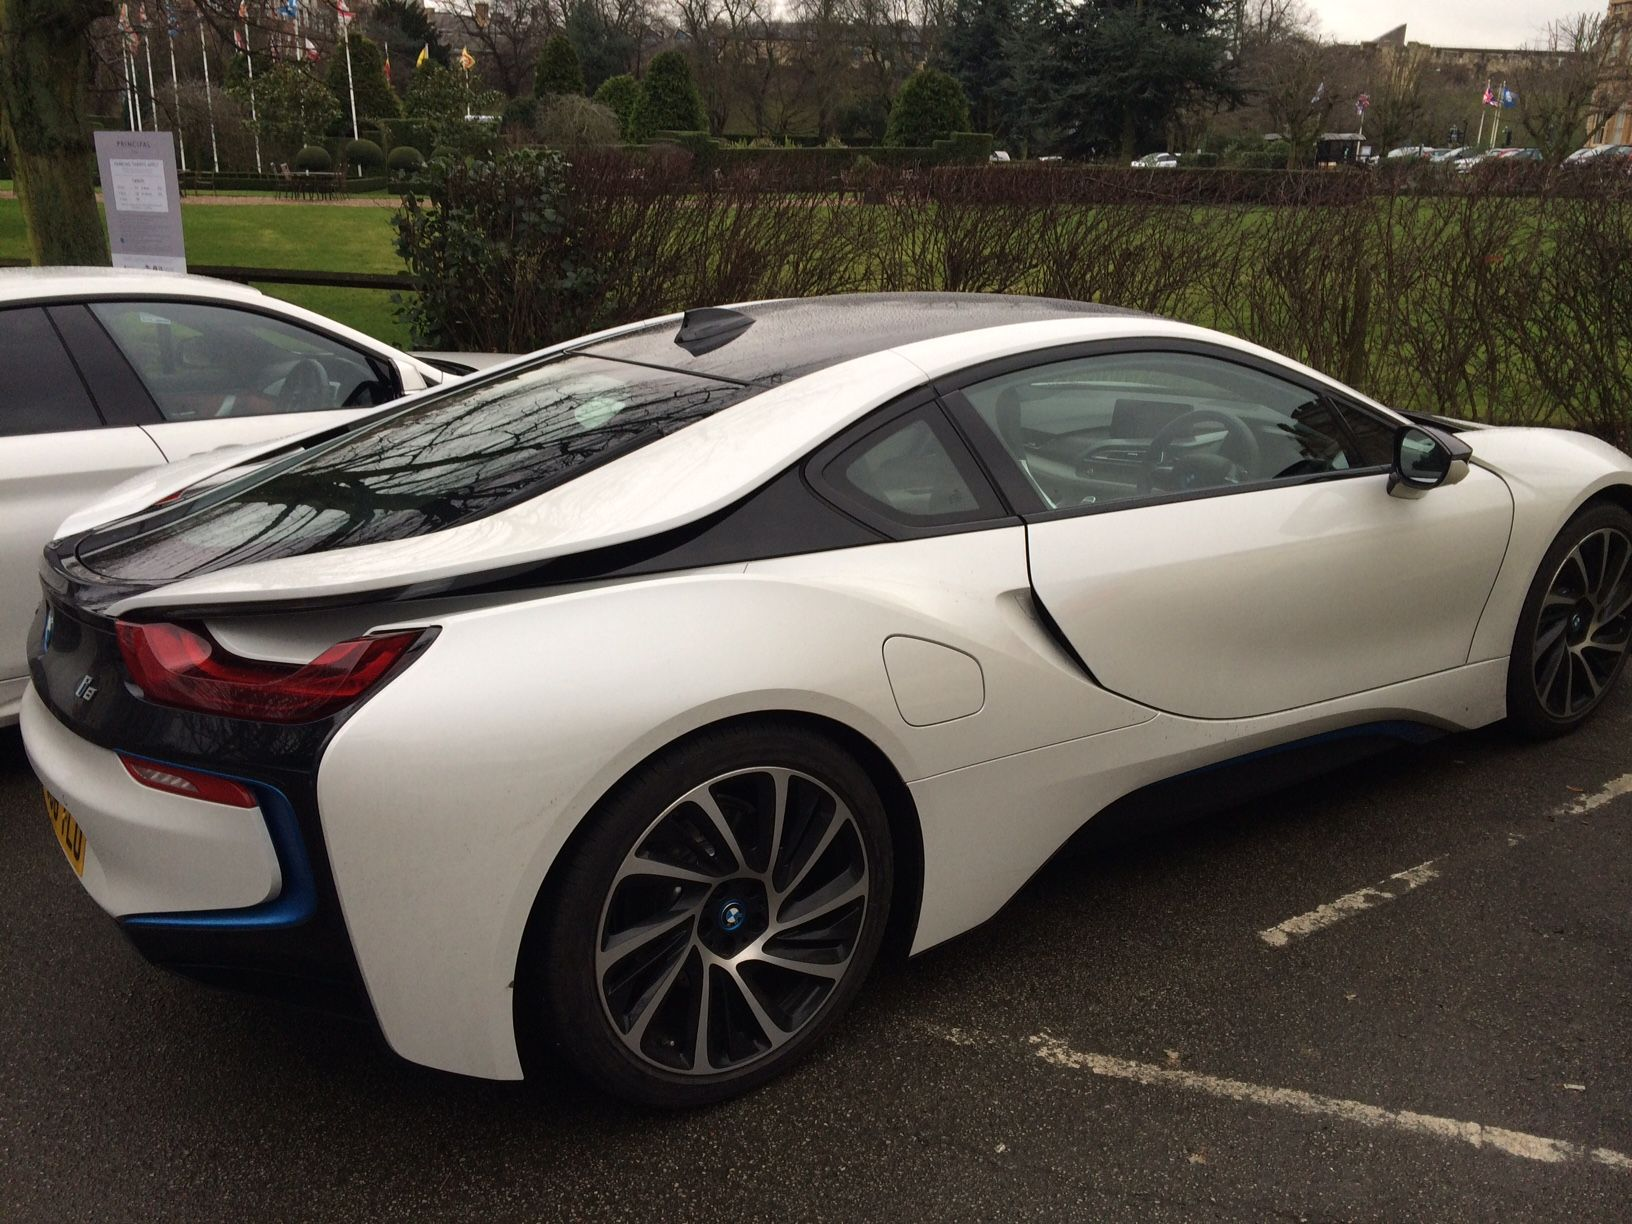 the bmw i8 #carleasing deal | one of the many cars and vans